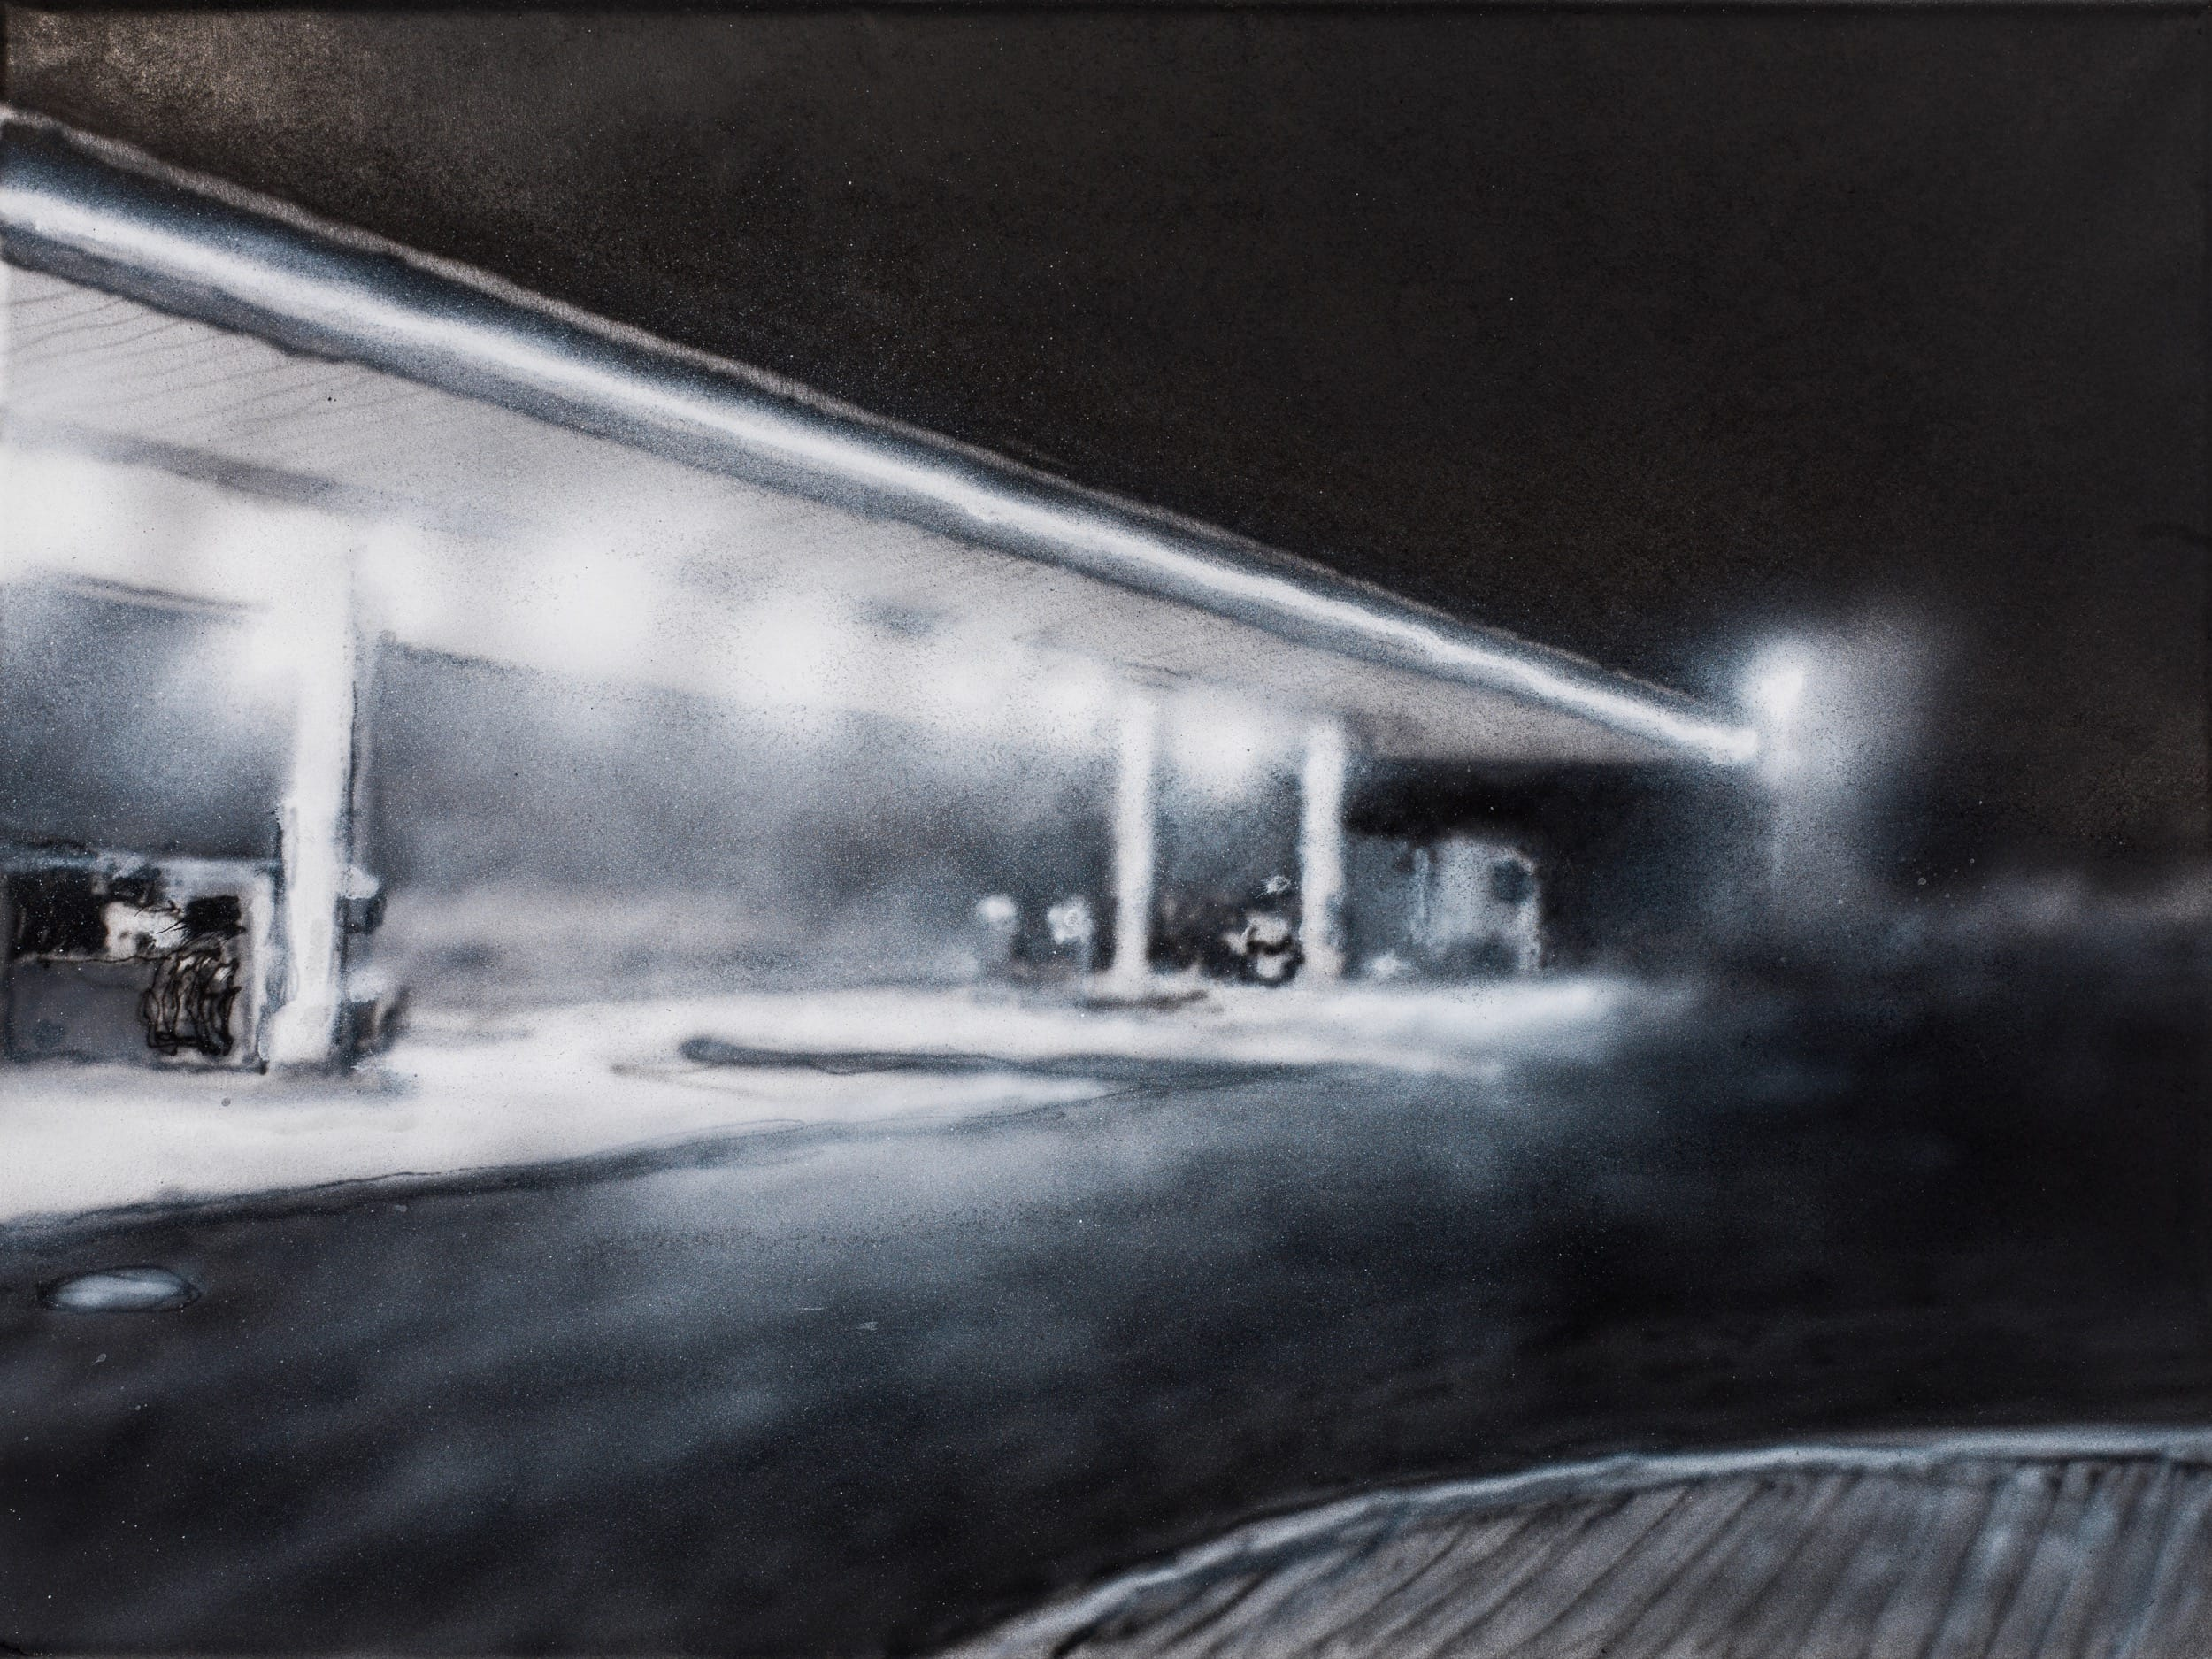 Tankstelle, Magdeburg. Ink on paper, 40 x 30 cm, 2019